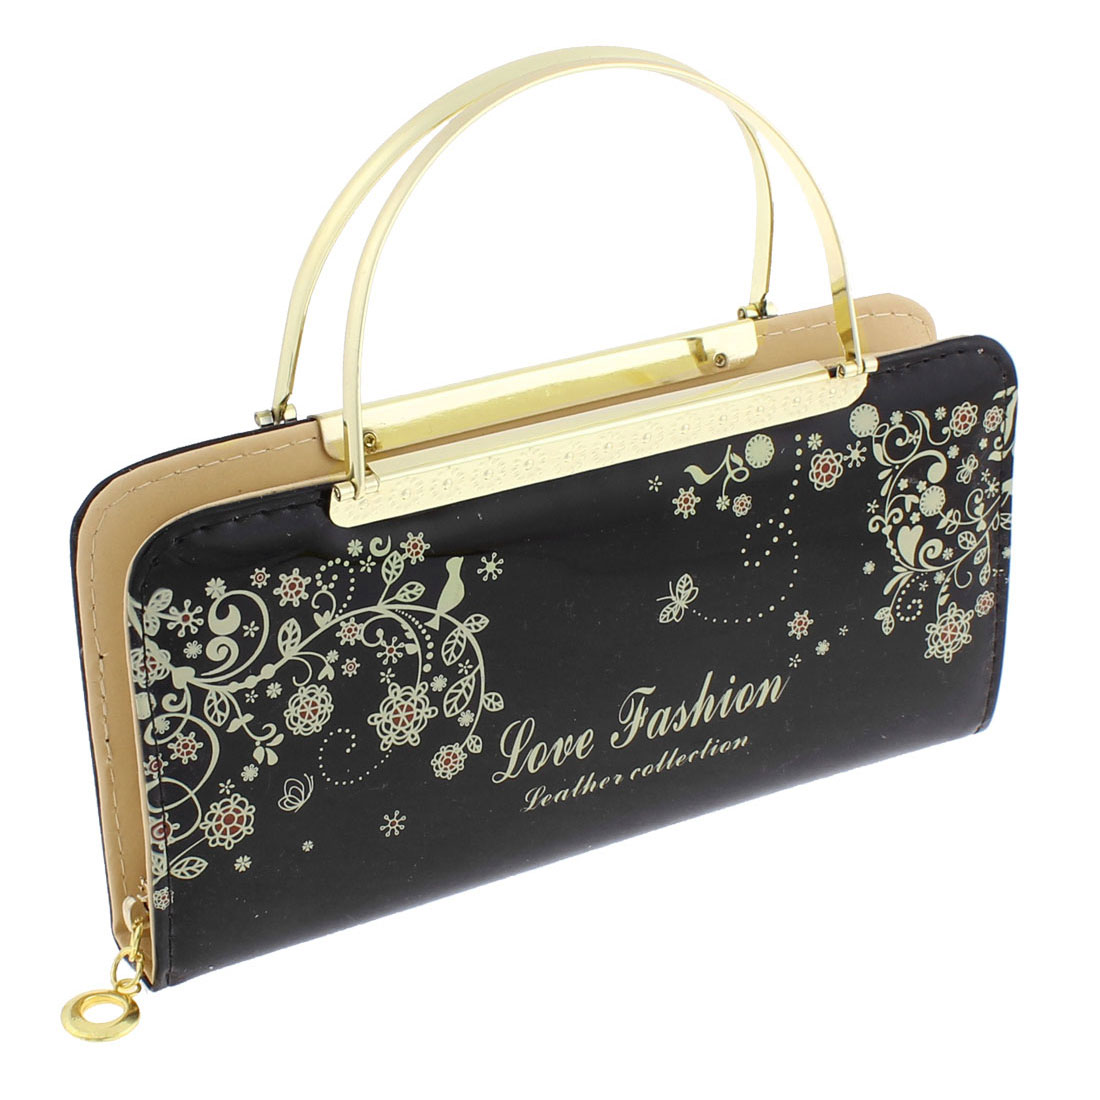 Faux Leather Zip Up Floral Letters Print Handbag Purse Evening Clutch Bag Black